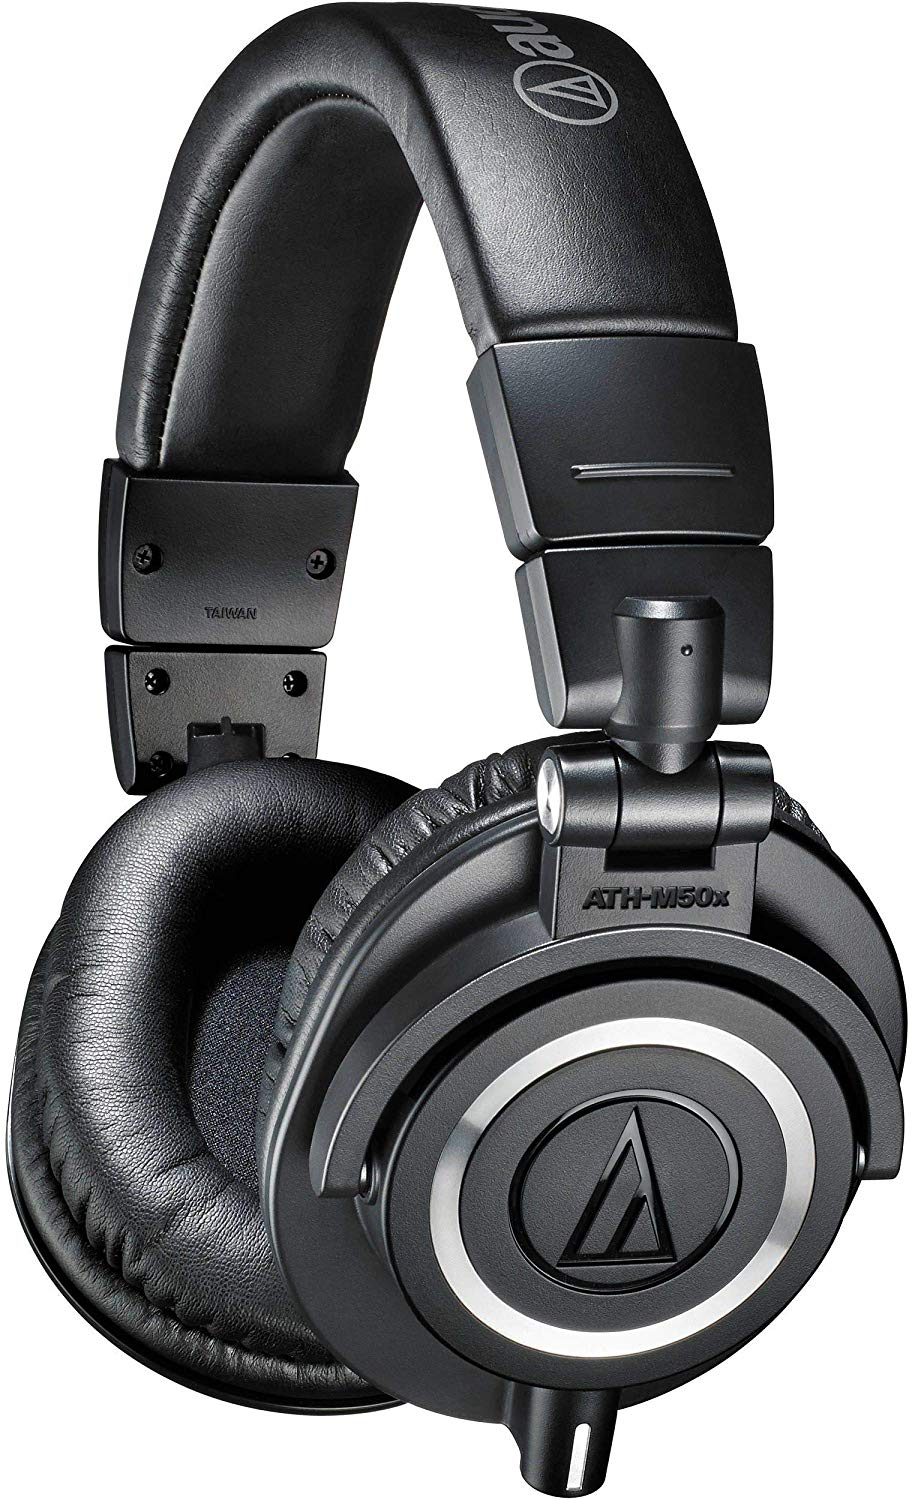 Audio Technica M50X, cuffie monitor dal timbro sonoro vicinissimo alla neutralità | Evosmart.it